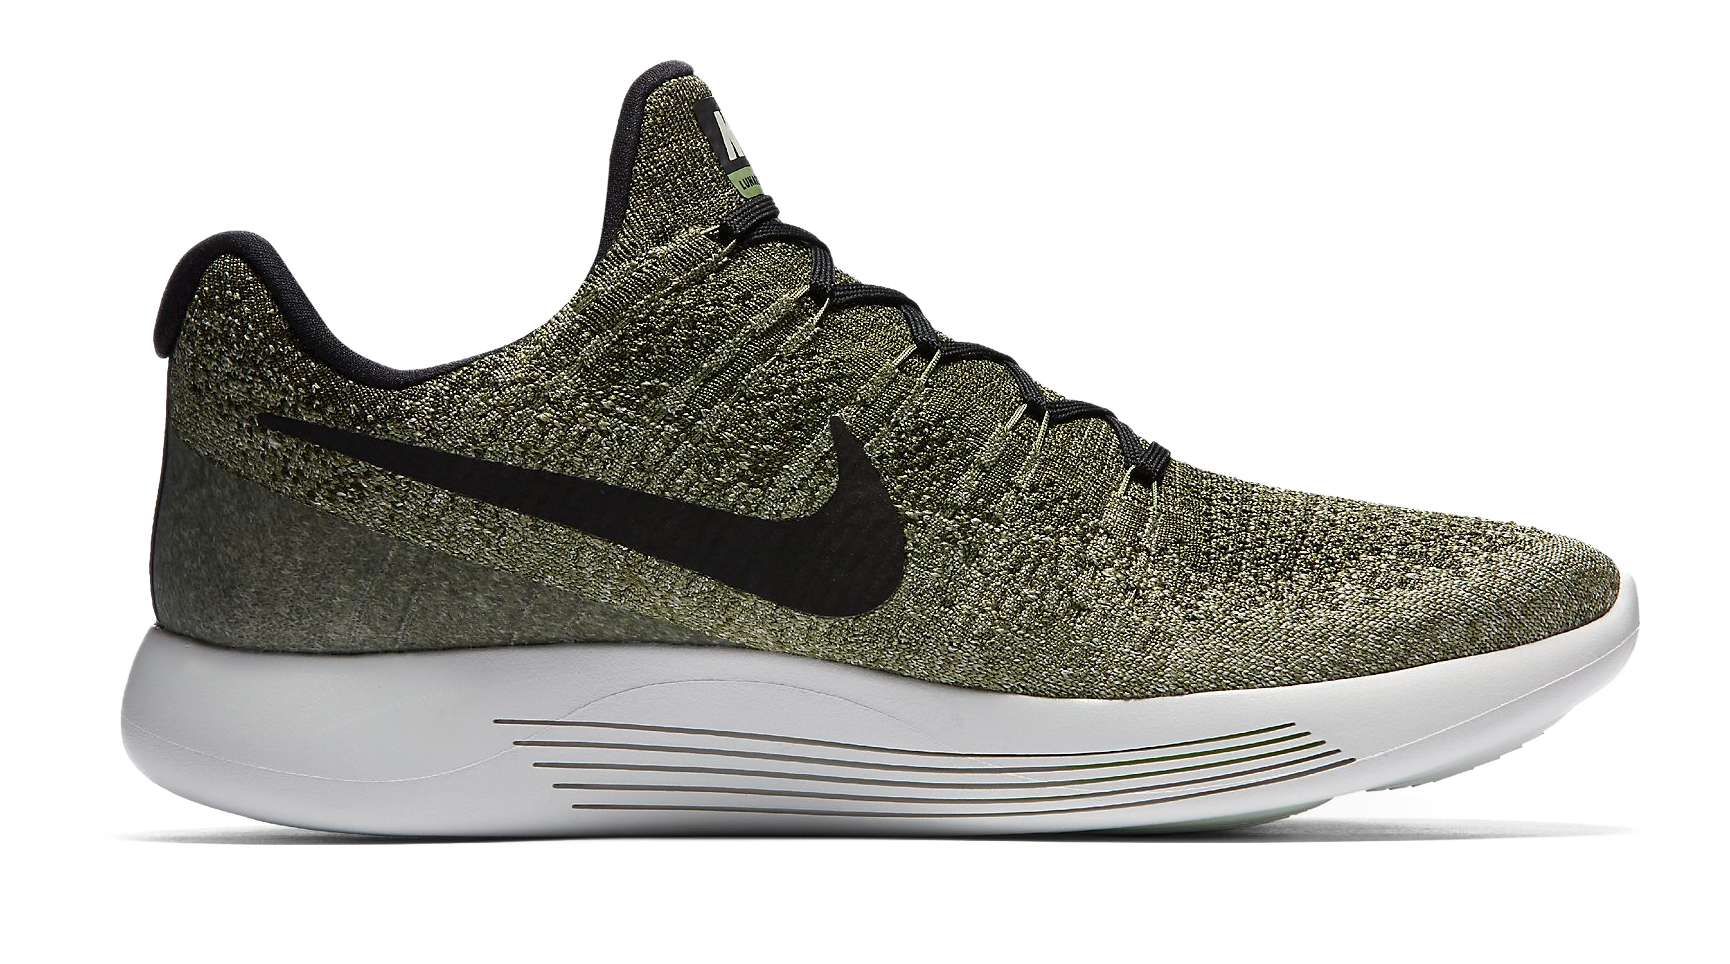 Nike LunarEpic Low Flyknit 2 Road Running Shoes - Men s e0506bedd